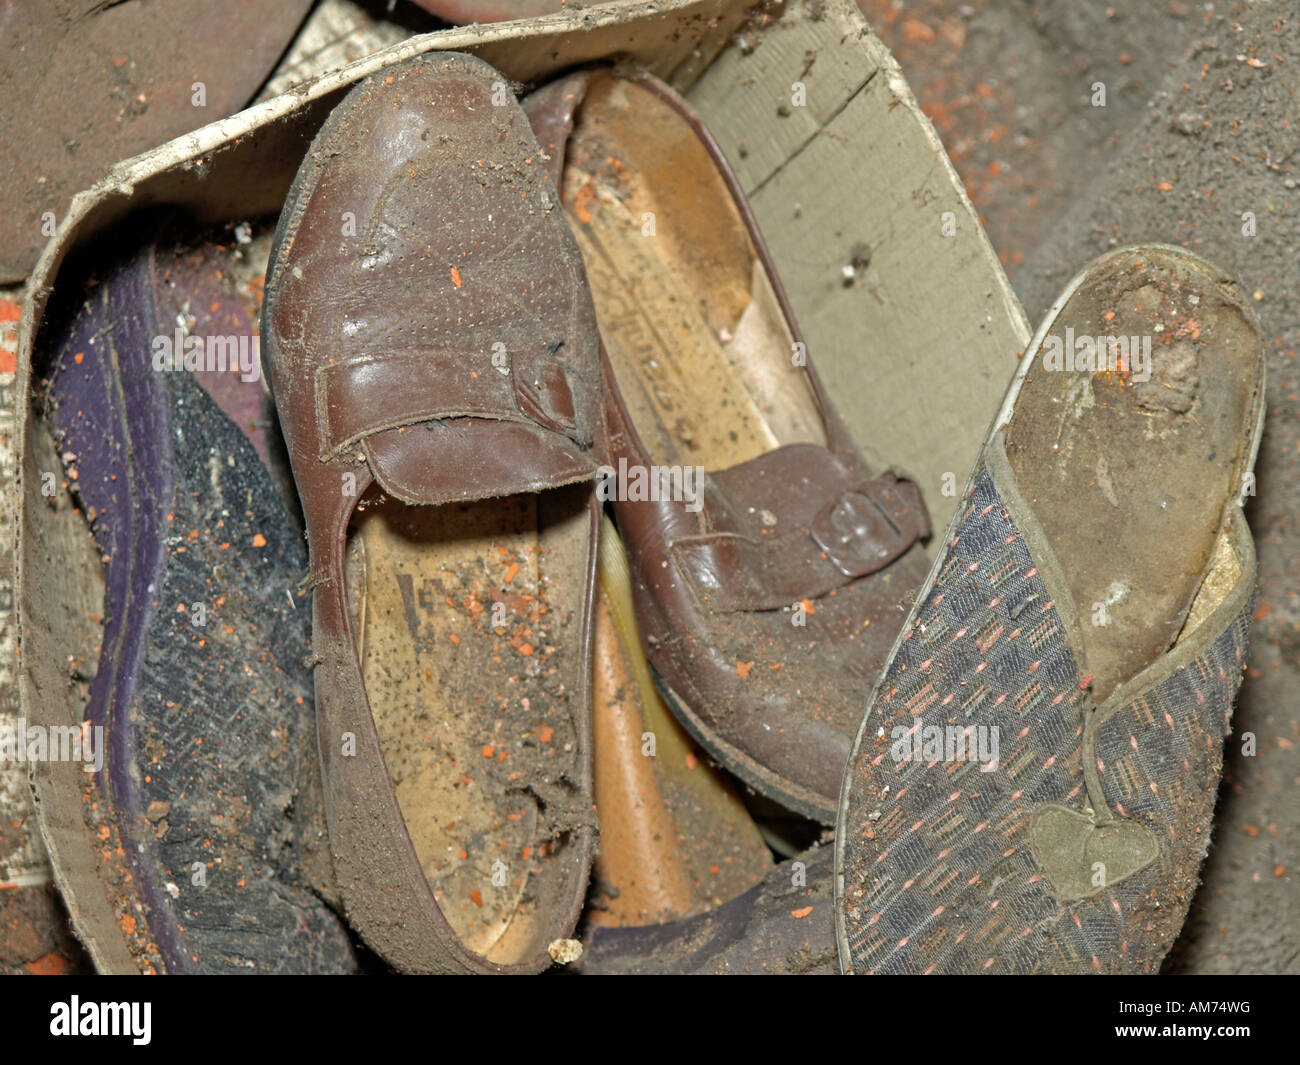 old dirty shoes and slippers - Stock Image